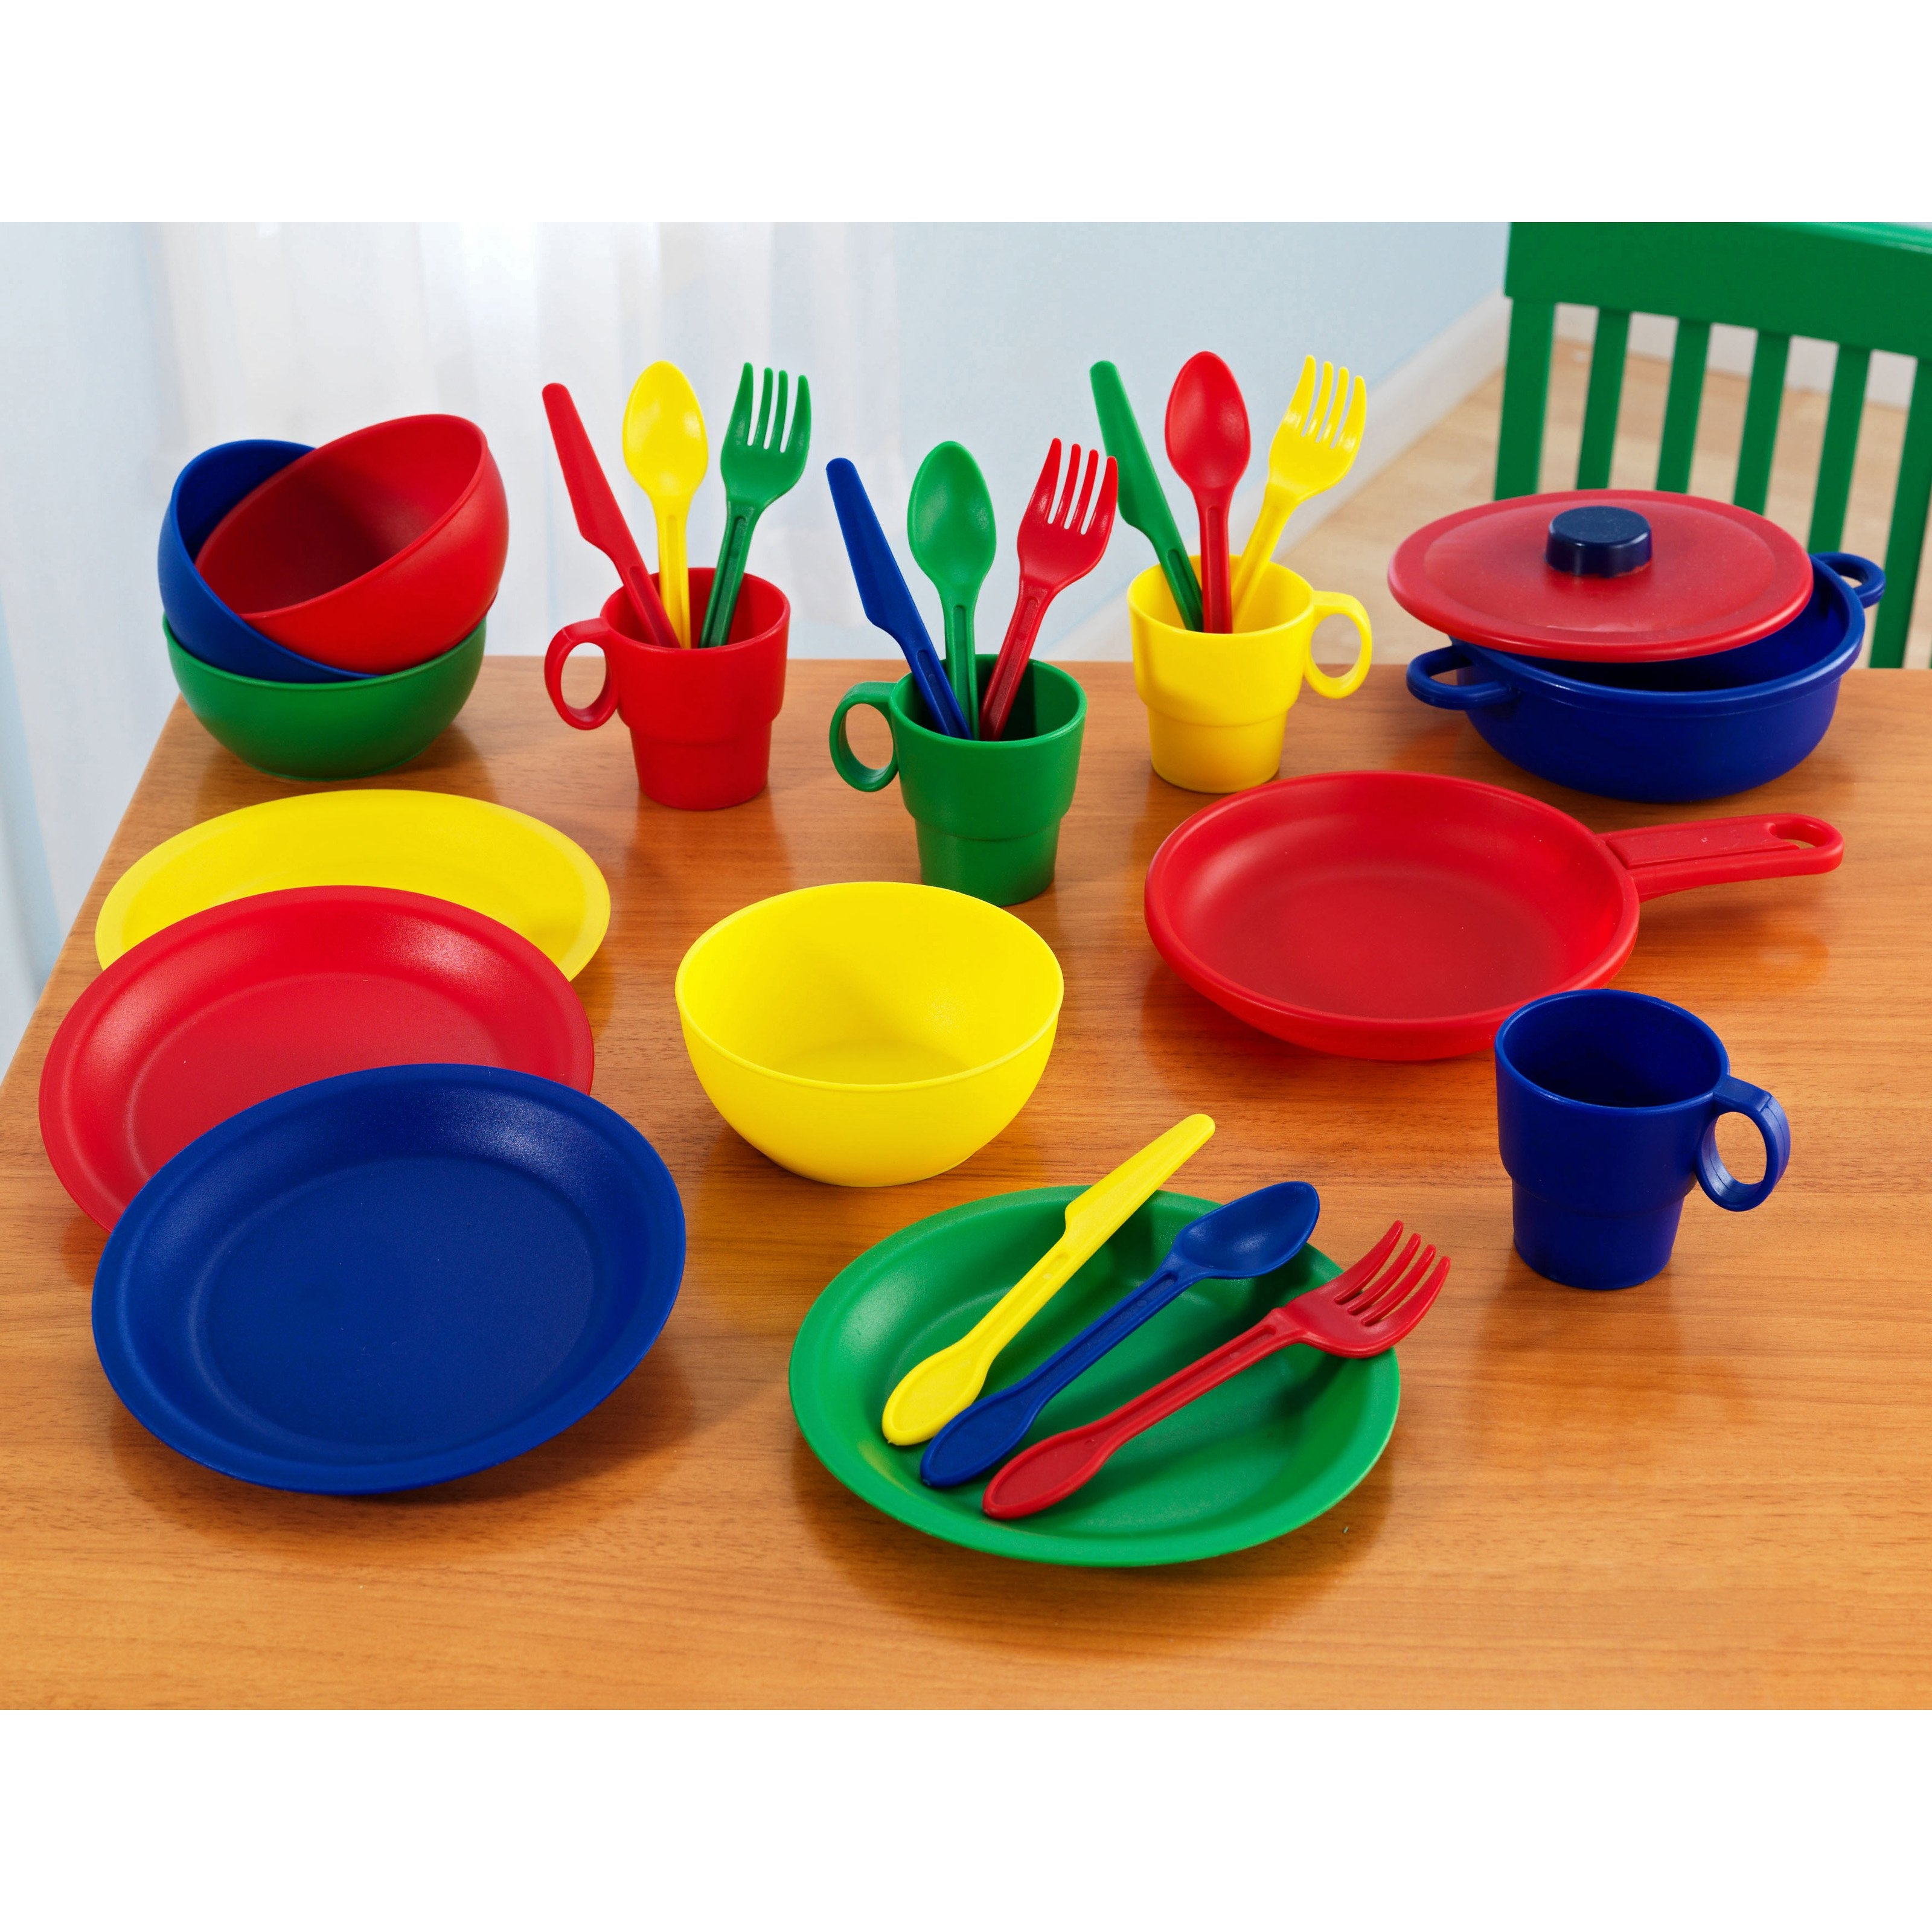 Kitchen Play Set Dishes